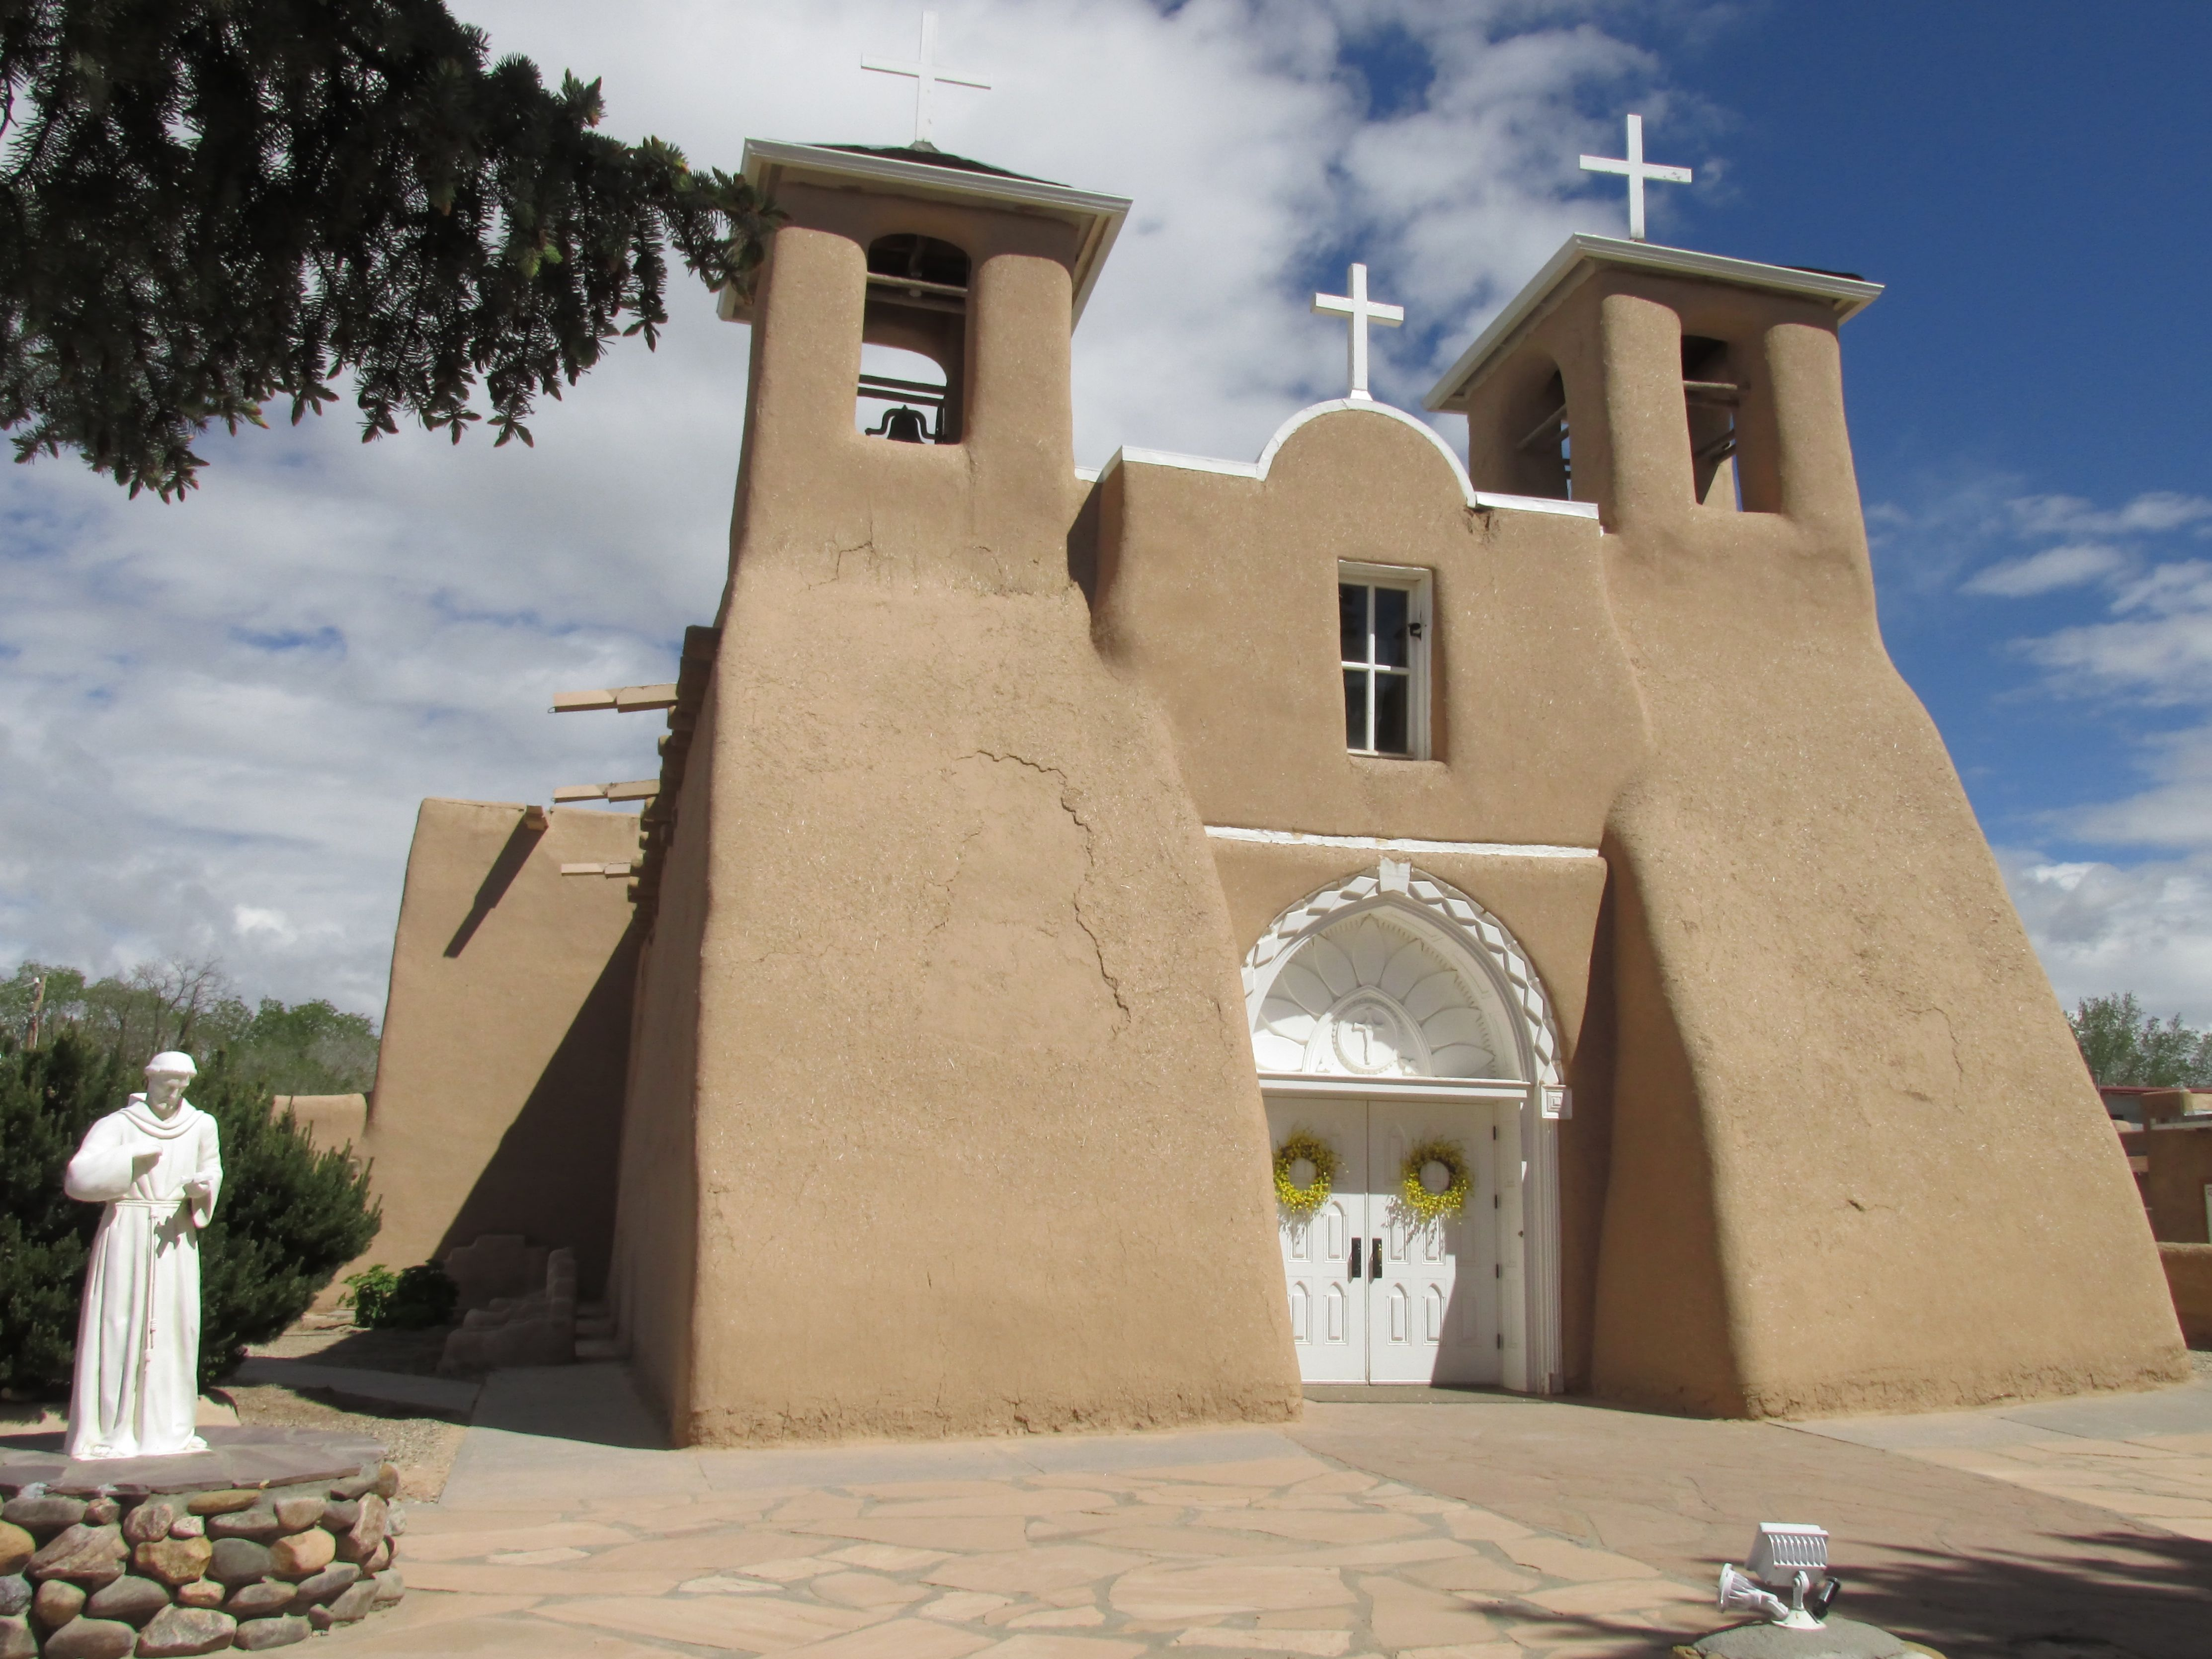 St. Francis of Assisi in Rancho de Taos